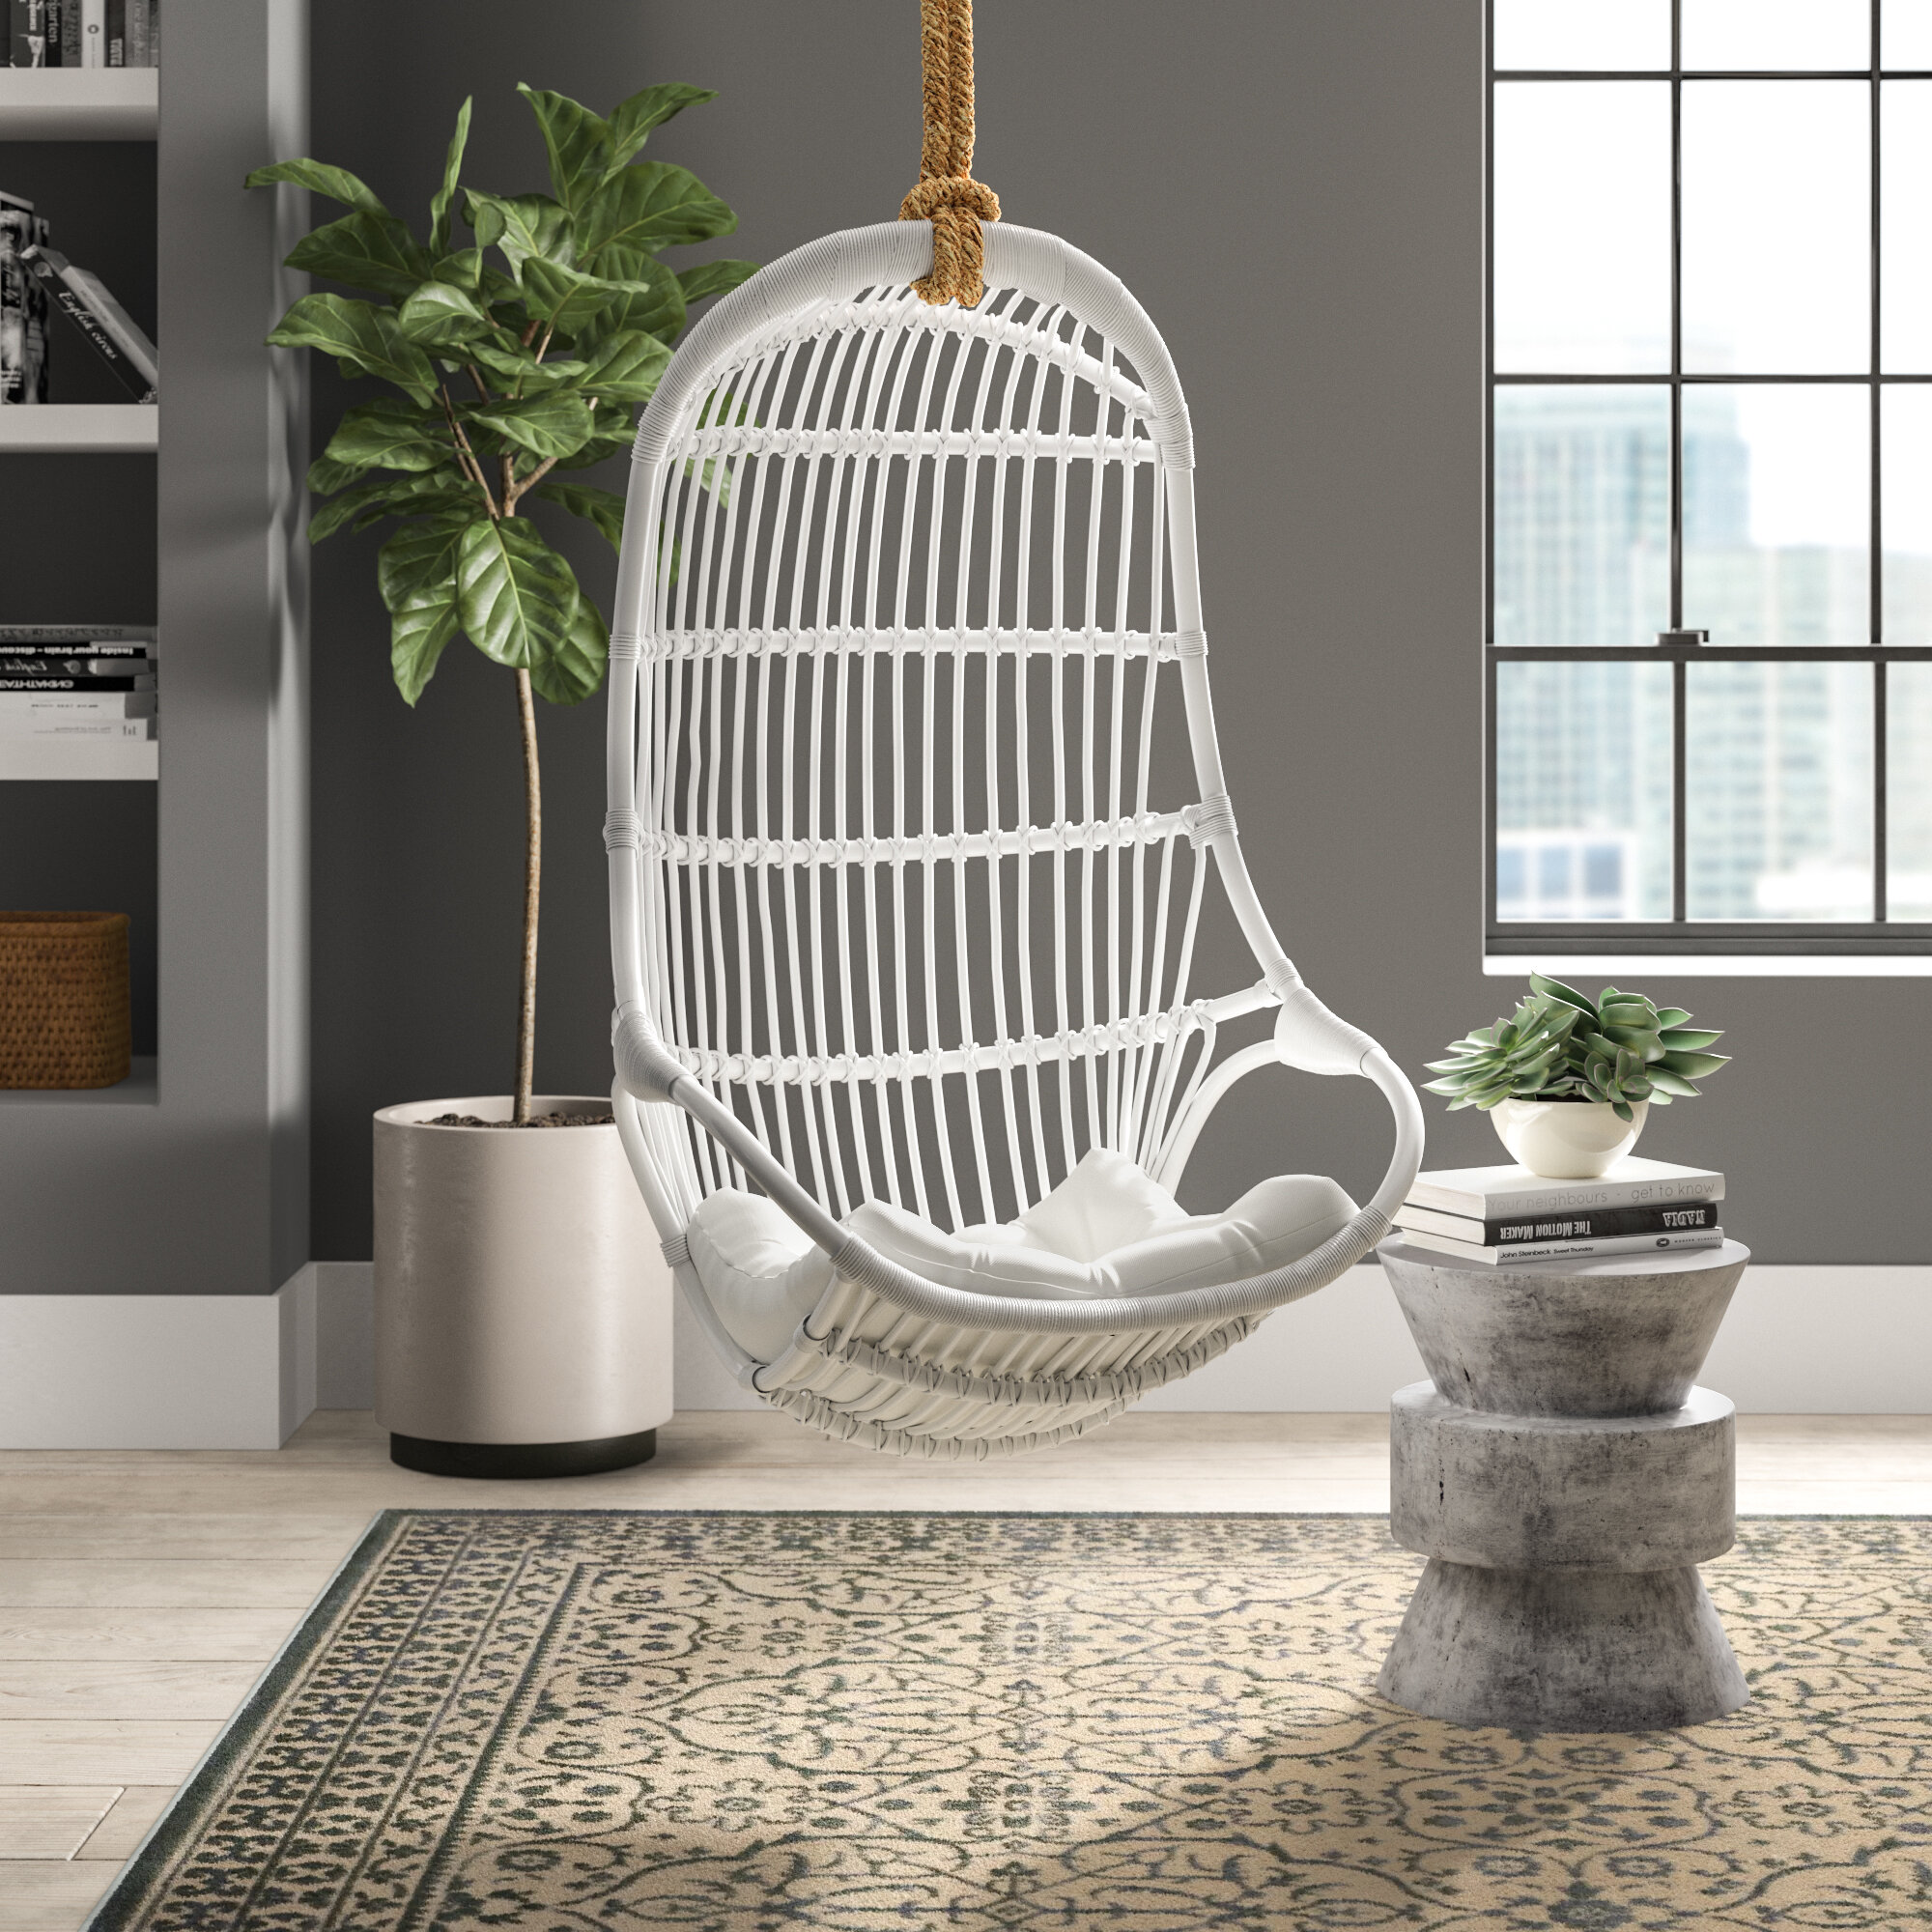 Greyleigh Briaroaks Hanging Rattan Swing Chair Reviews Wayfair